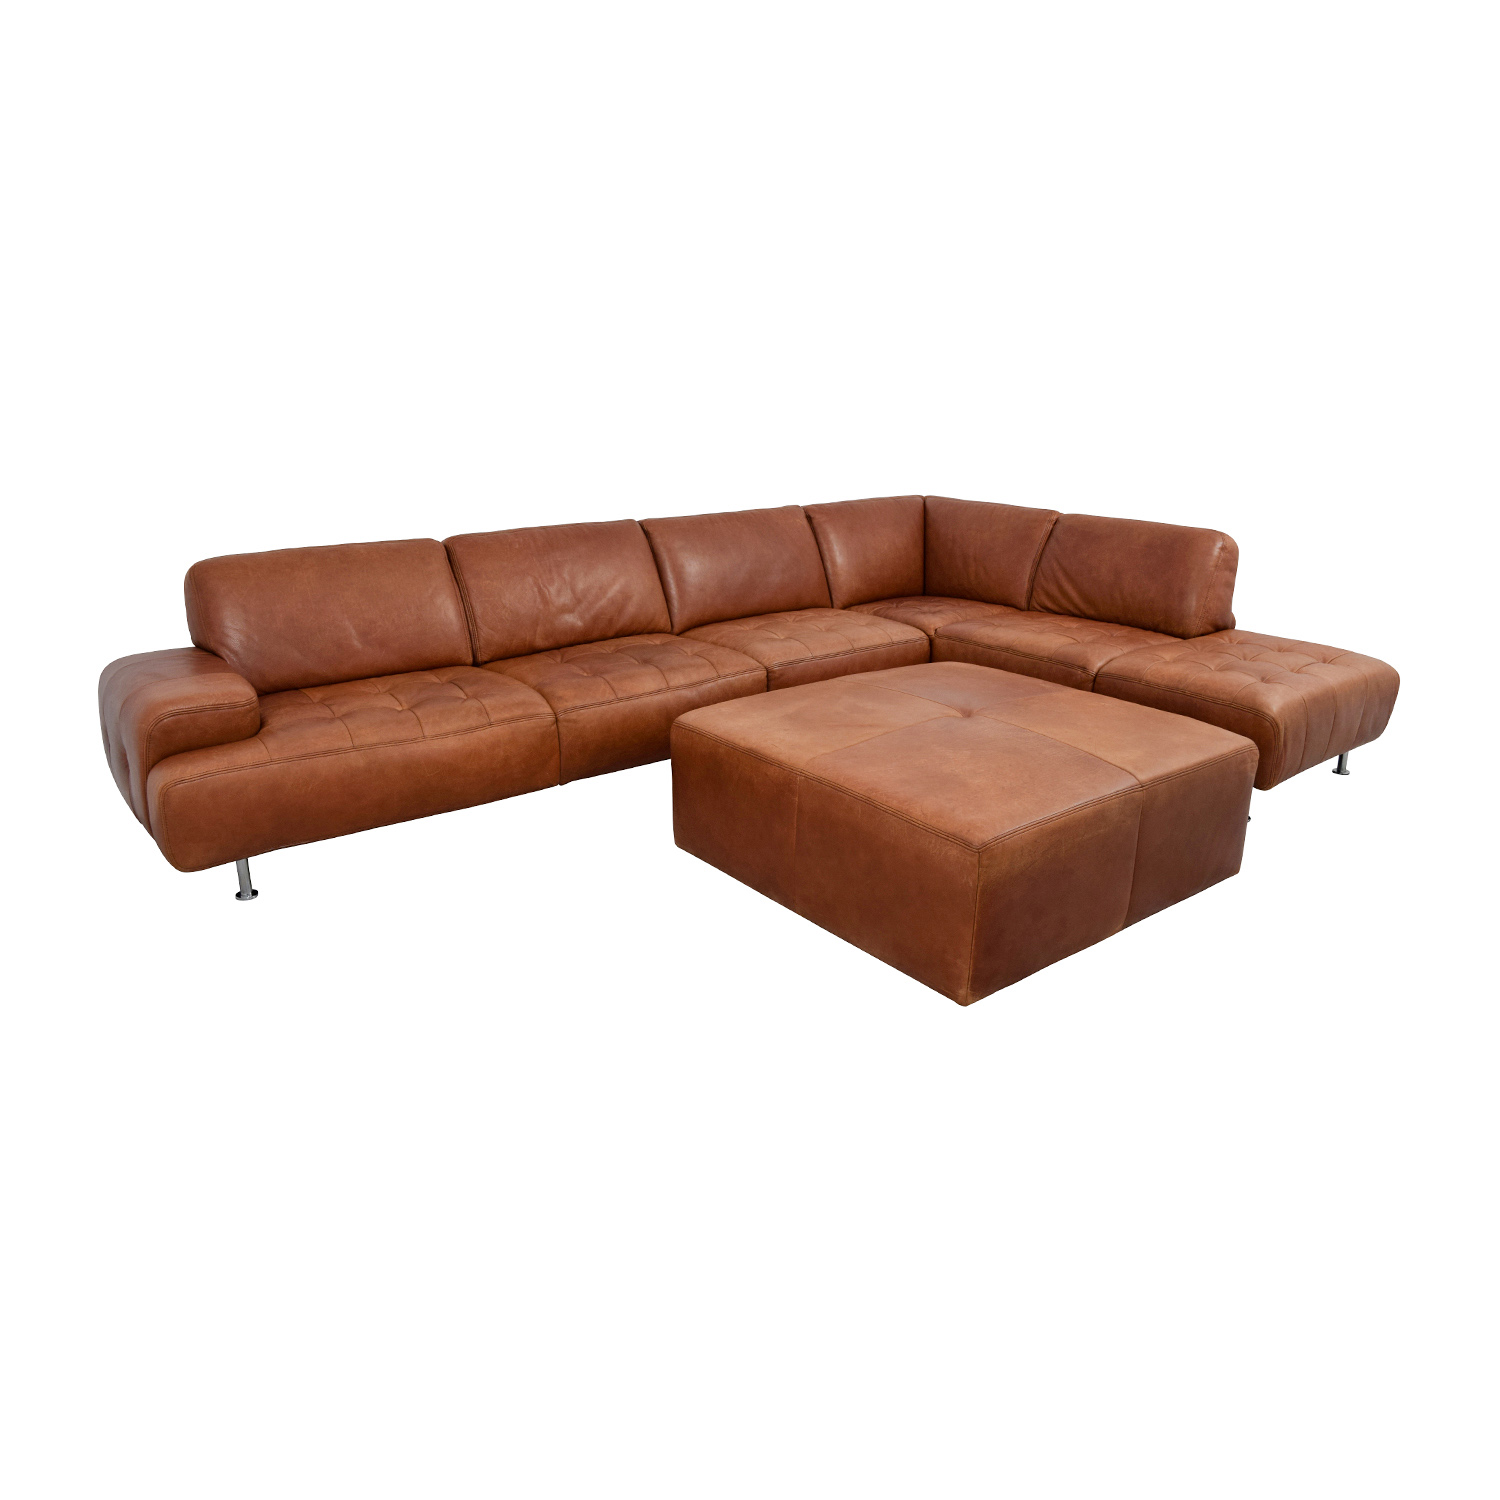 46 off w schillig w schillig leather sectional with ottoman w schillig w schillig leather sectional with ottoman for sale parisarafo Images